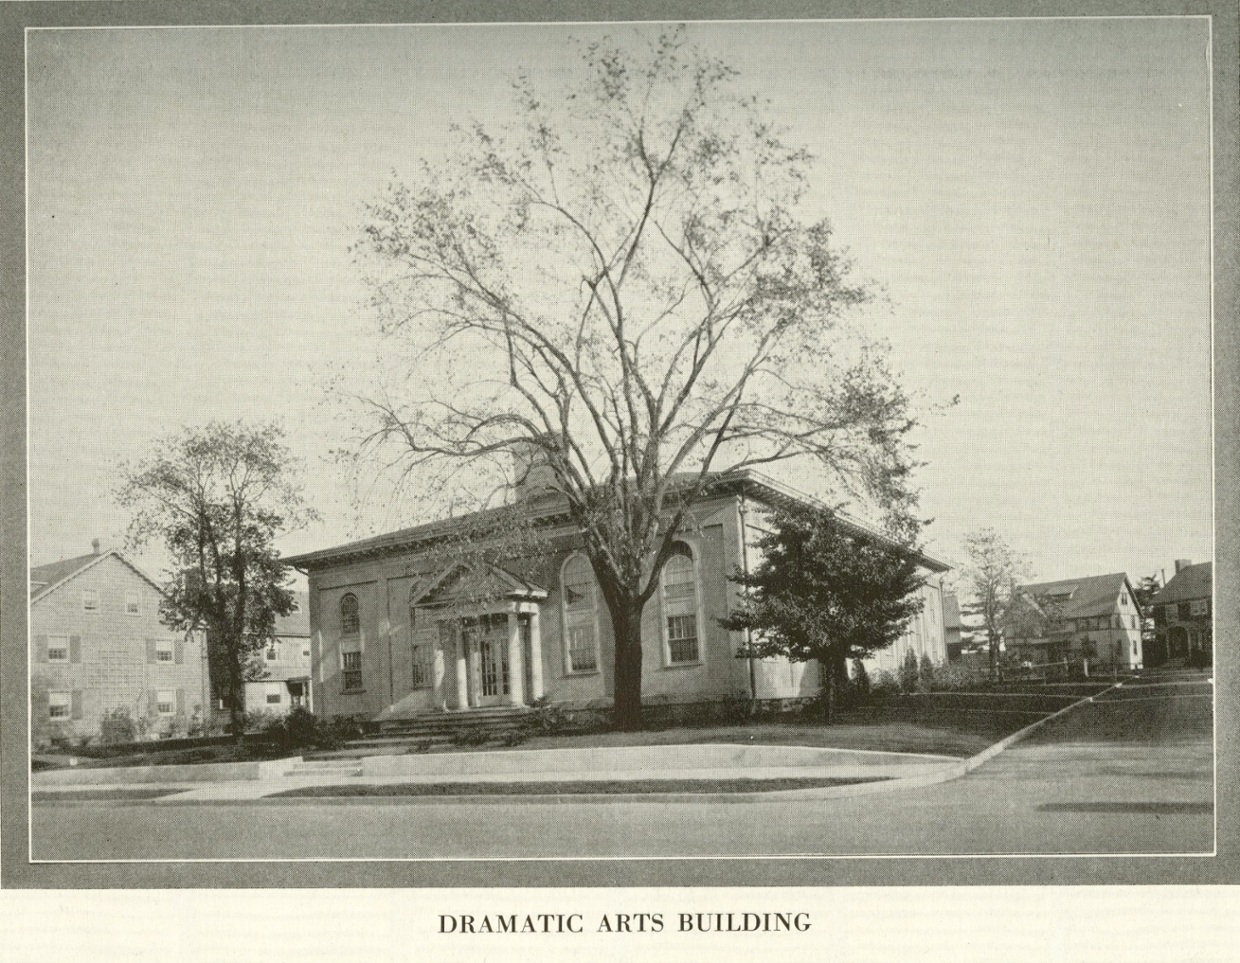 Dramatic Arts Building